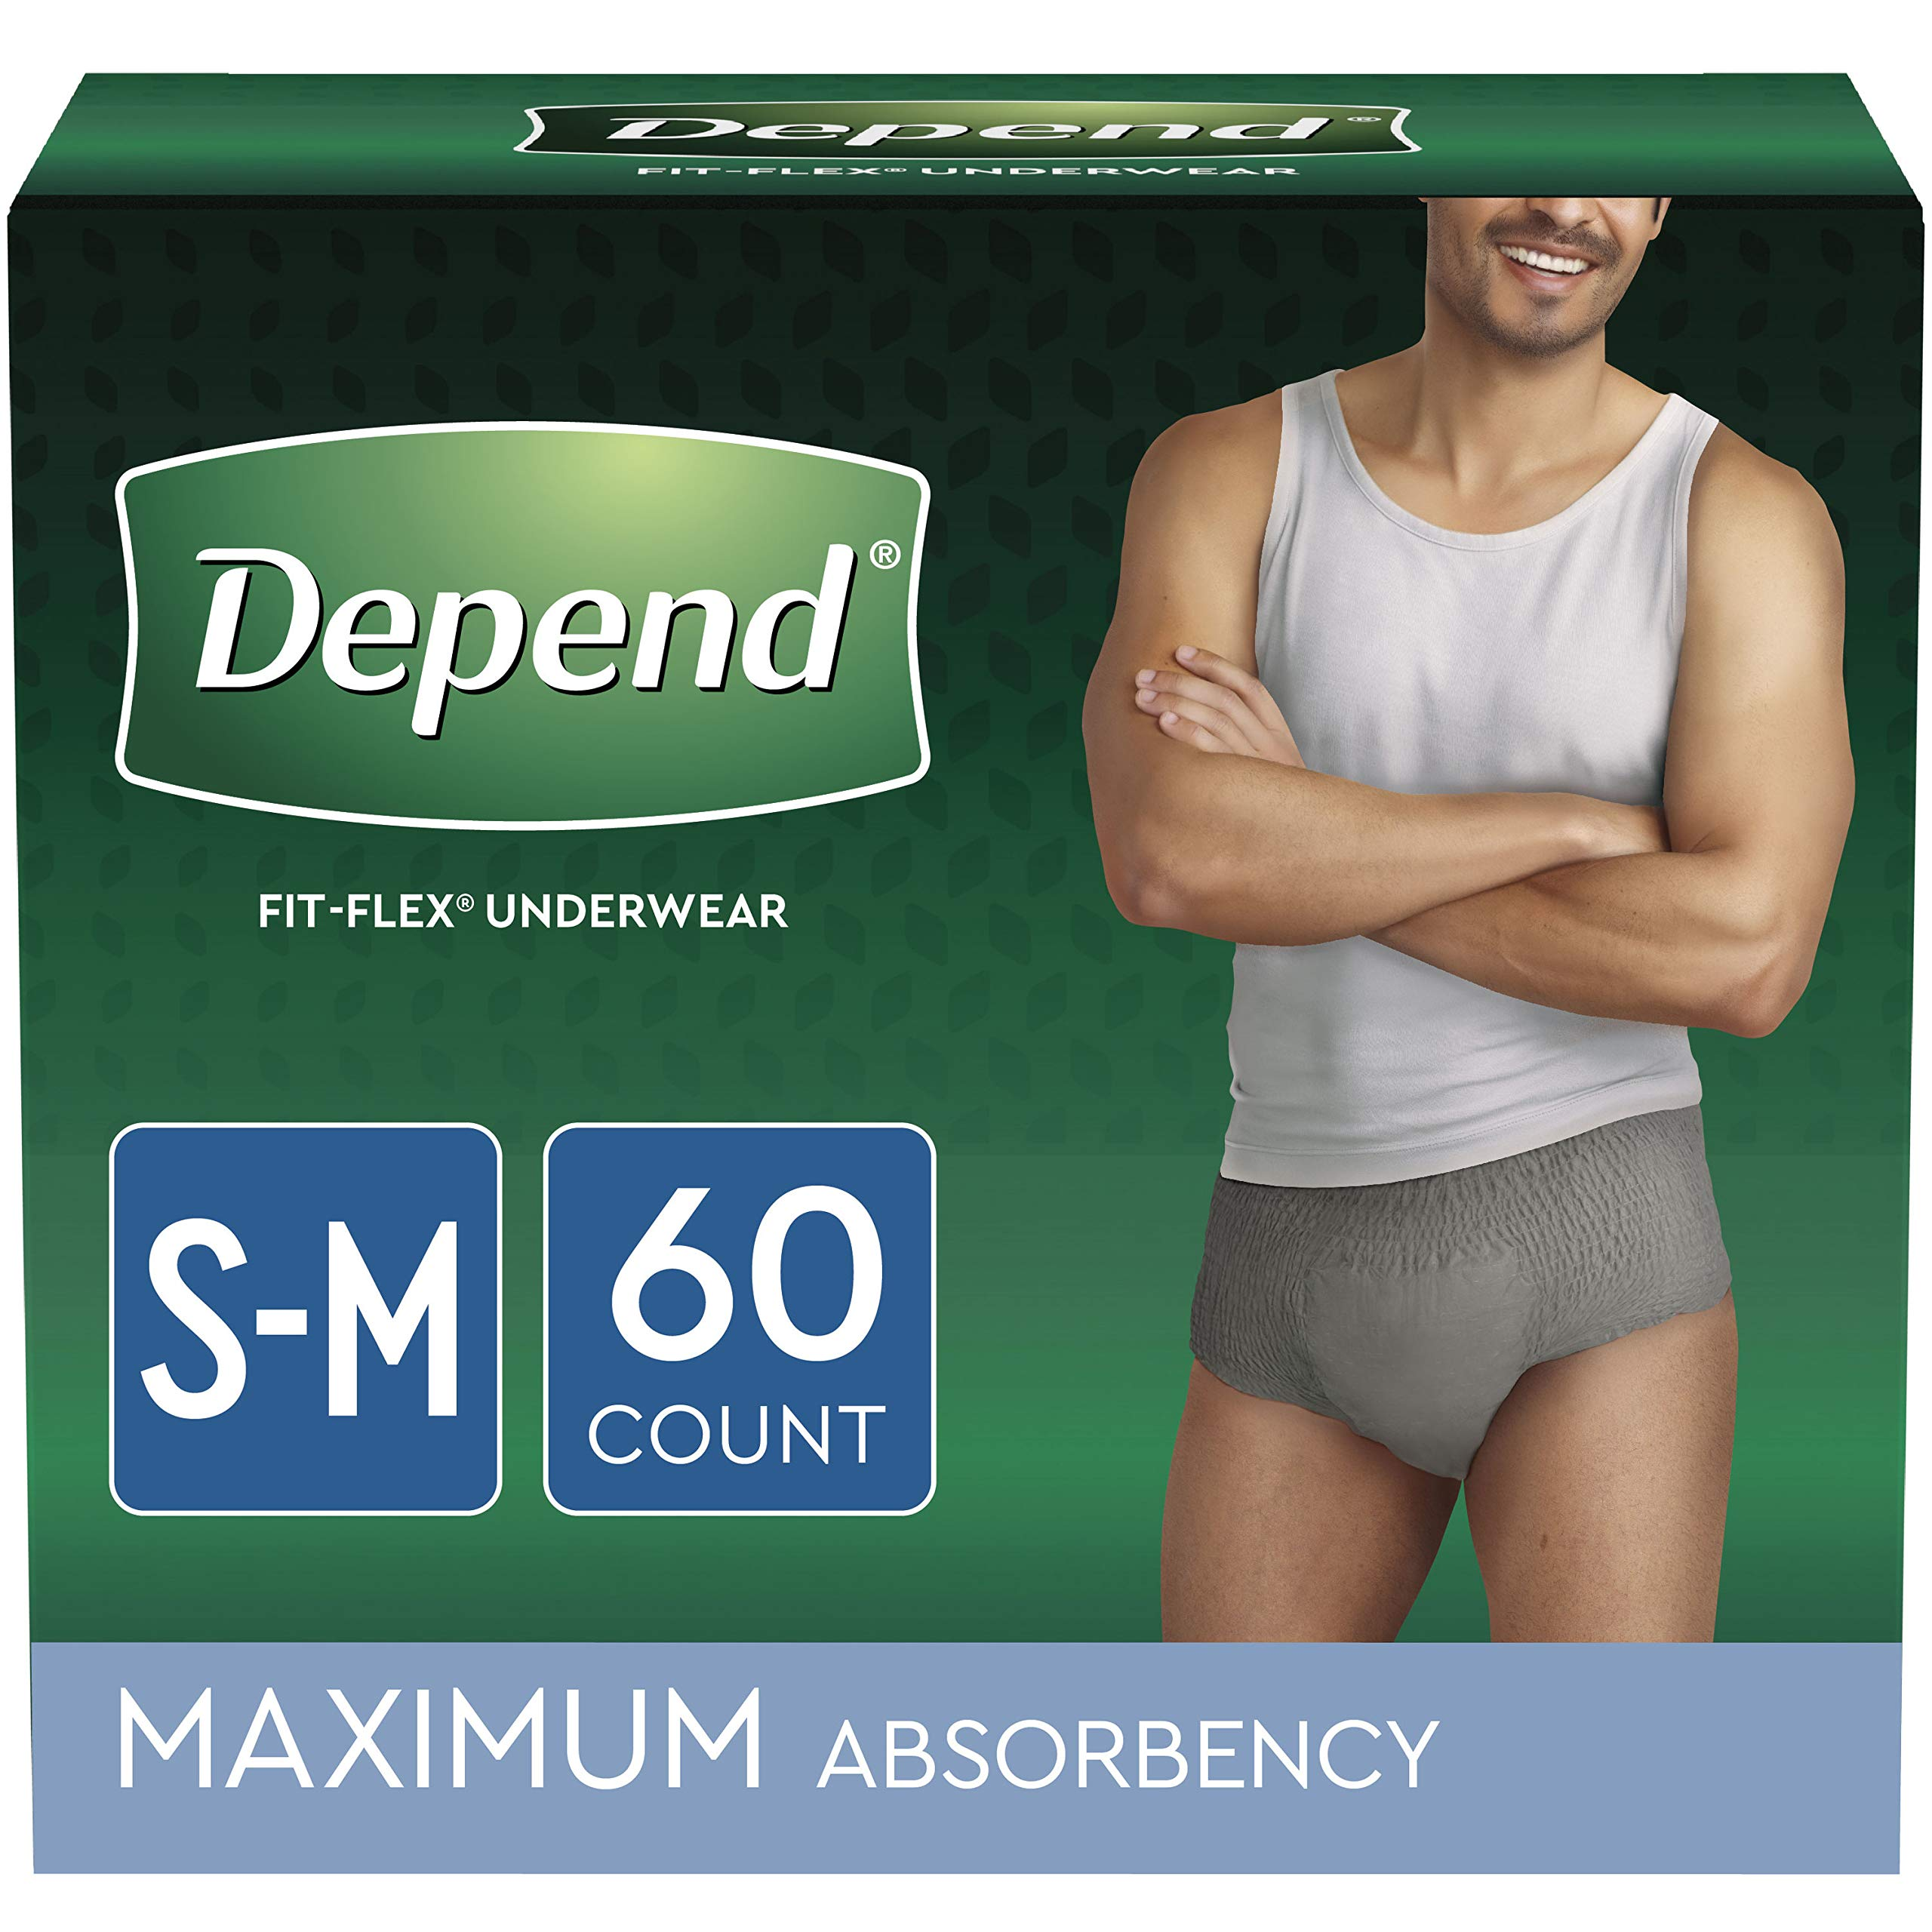 Depend FIT-FLEX Incontinence Underwear for Men, Maximum Absorbency, Disposable, Small/Medium, Grey, 60 Count by Depend